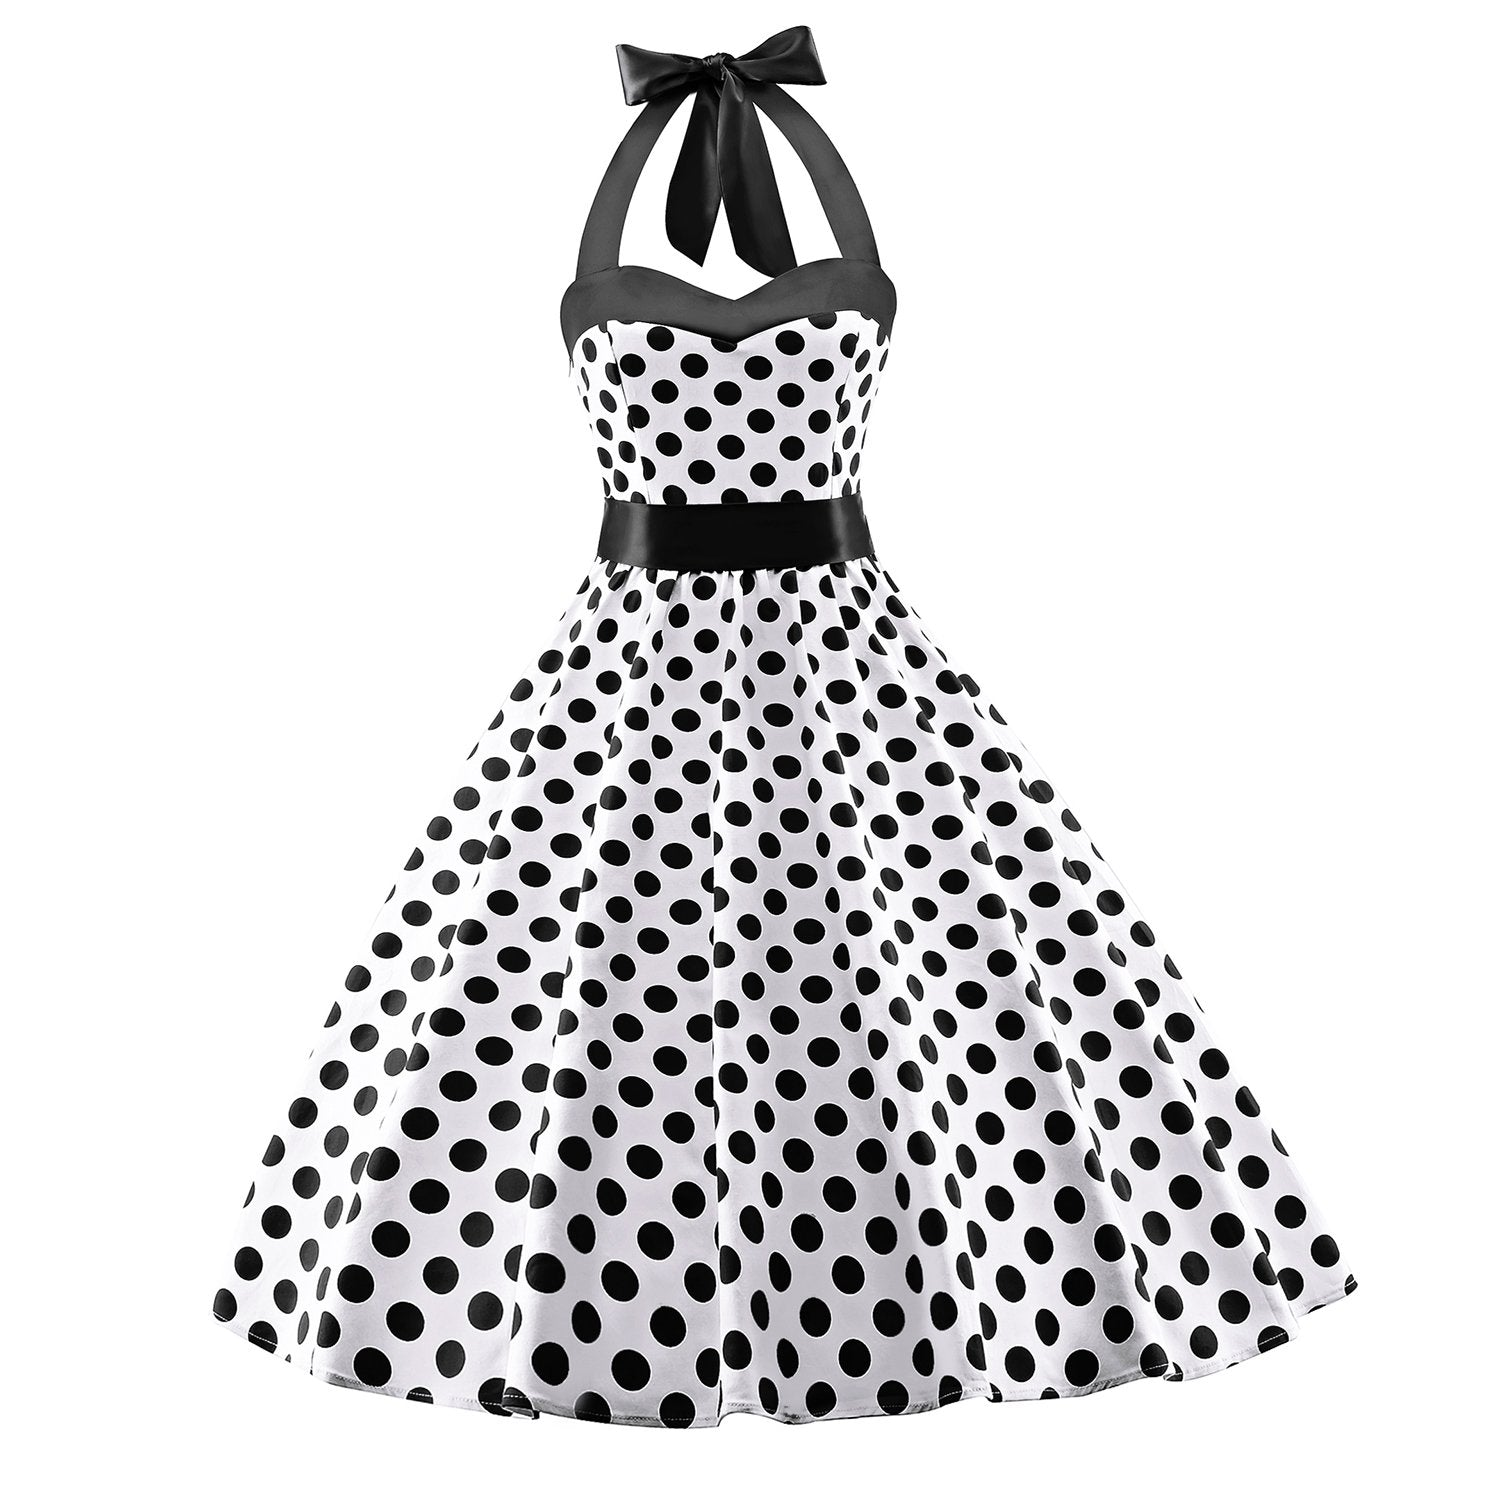 Women's 1950s Retro Cocktail Vintage White Dress with Black Polka Dots